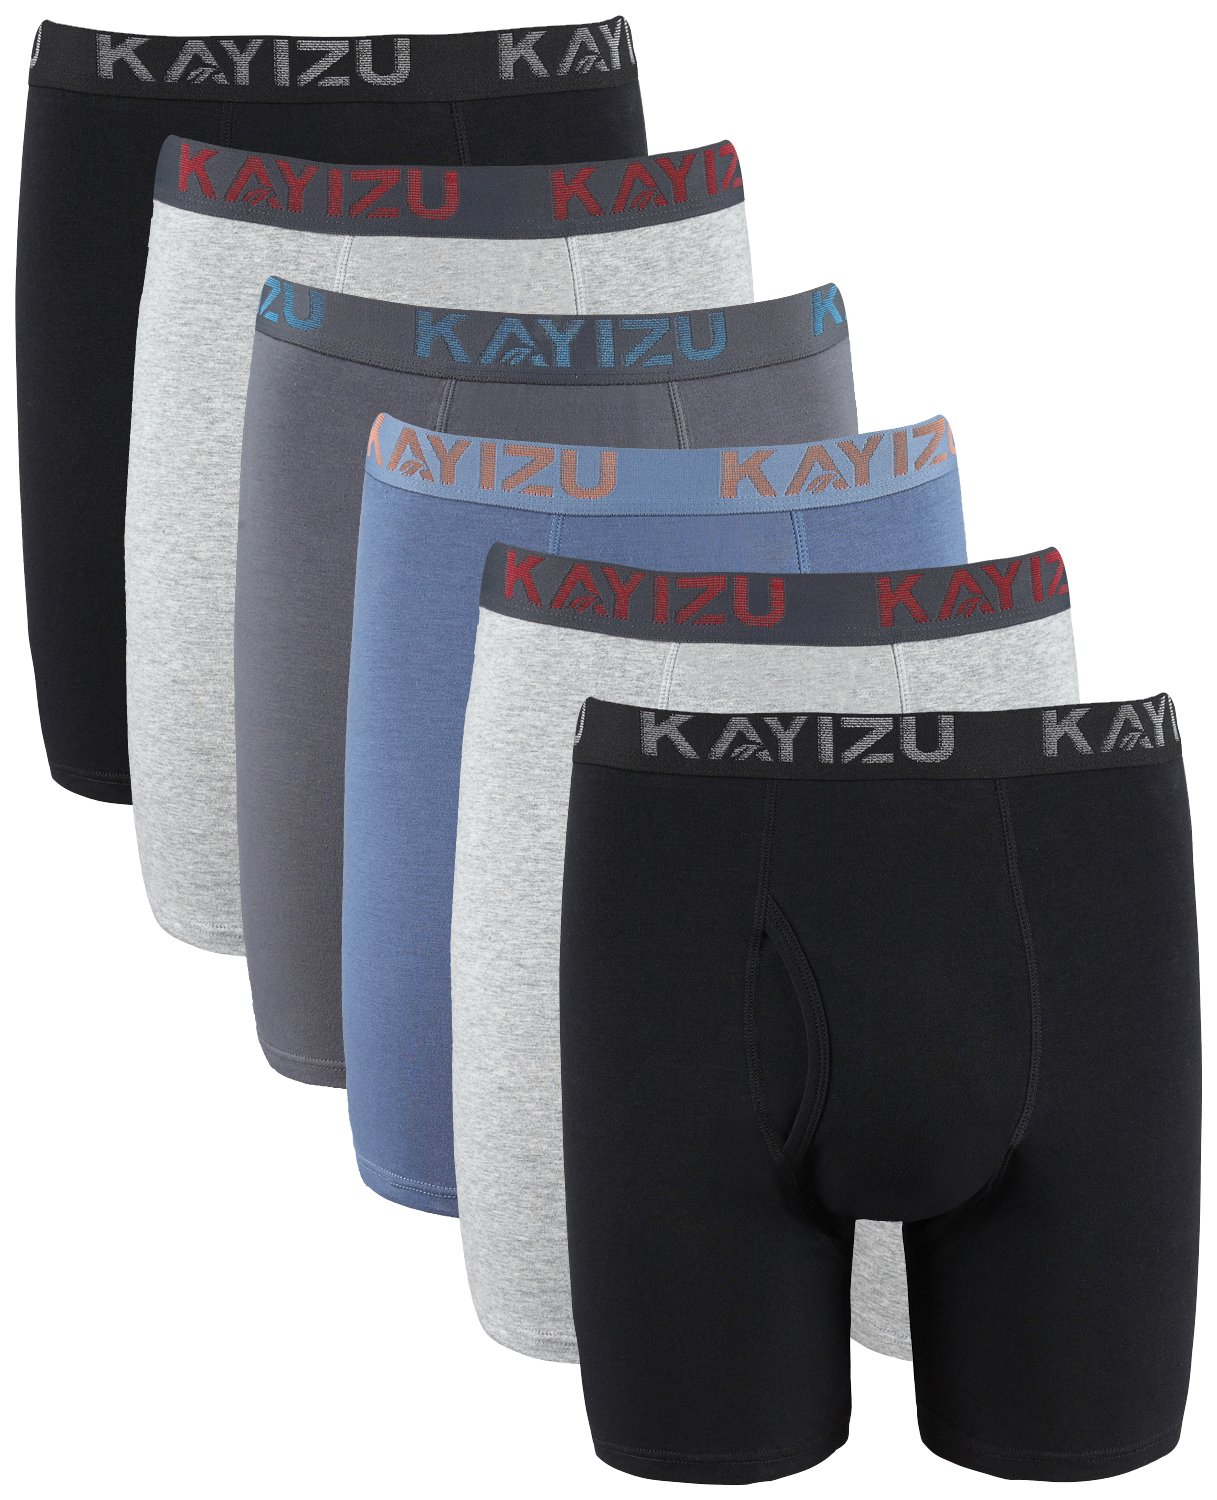 KAYIZU Men's Underwear Comfort Soft Cotton Stretch Boxer Briefs 6-Pack